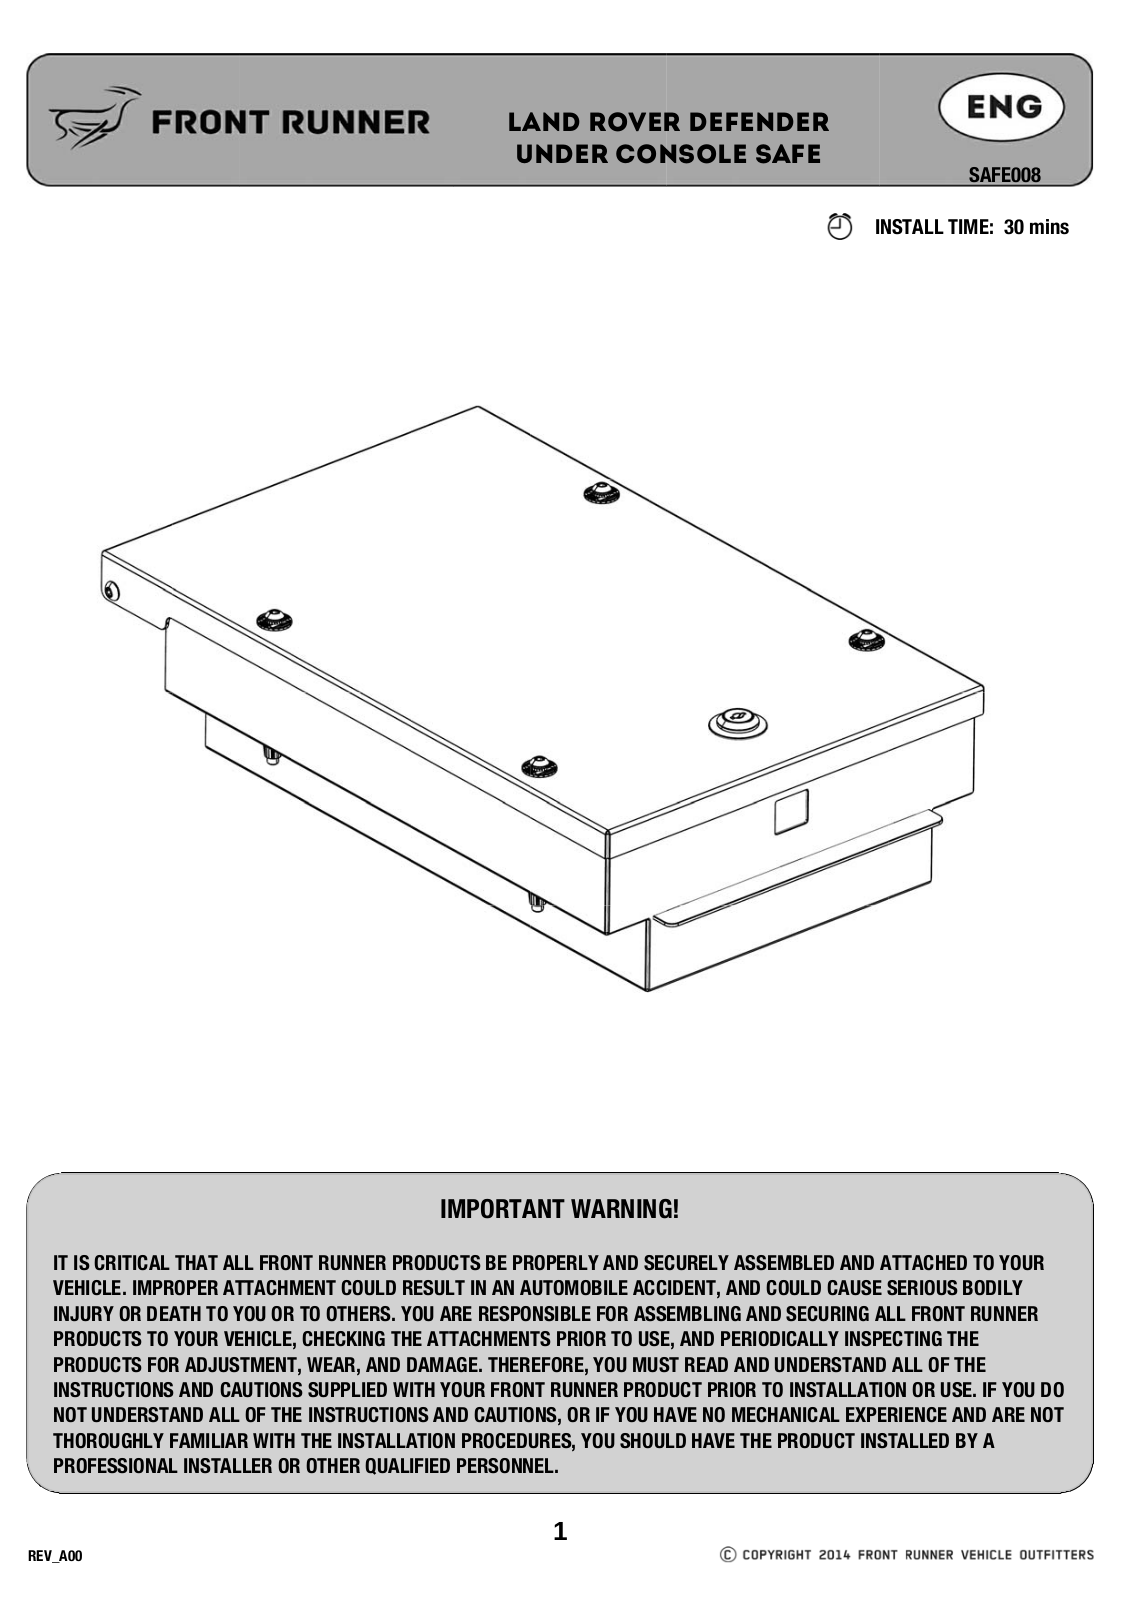 Installation instructions for SAFE008